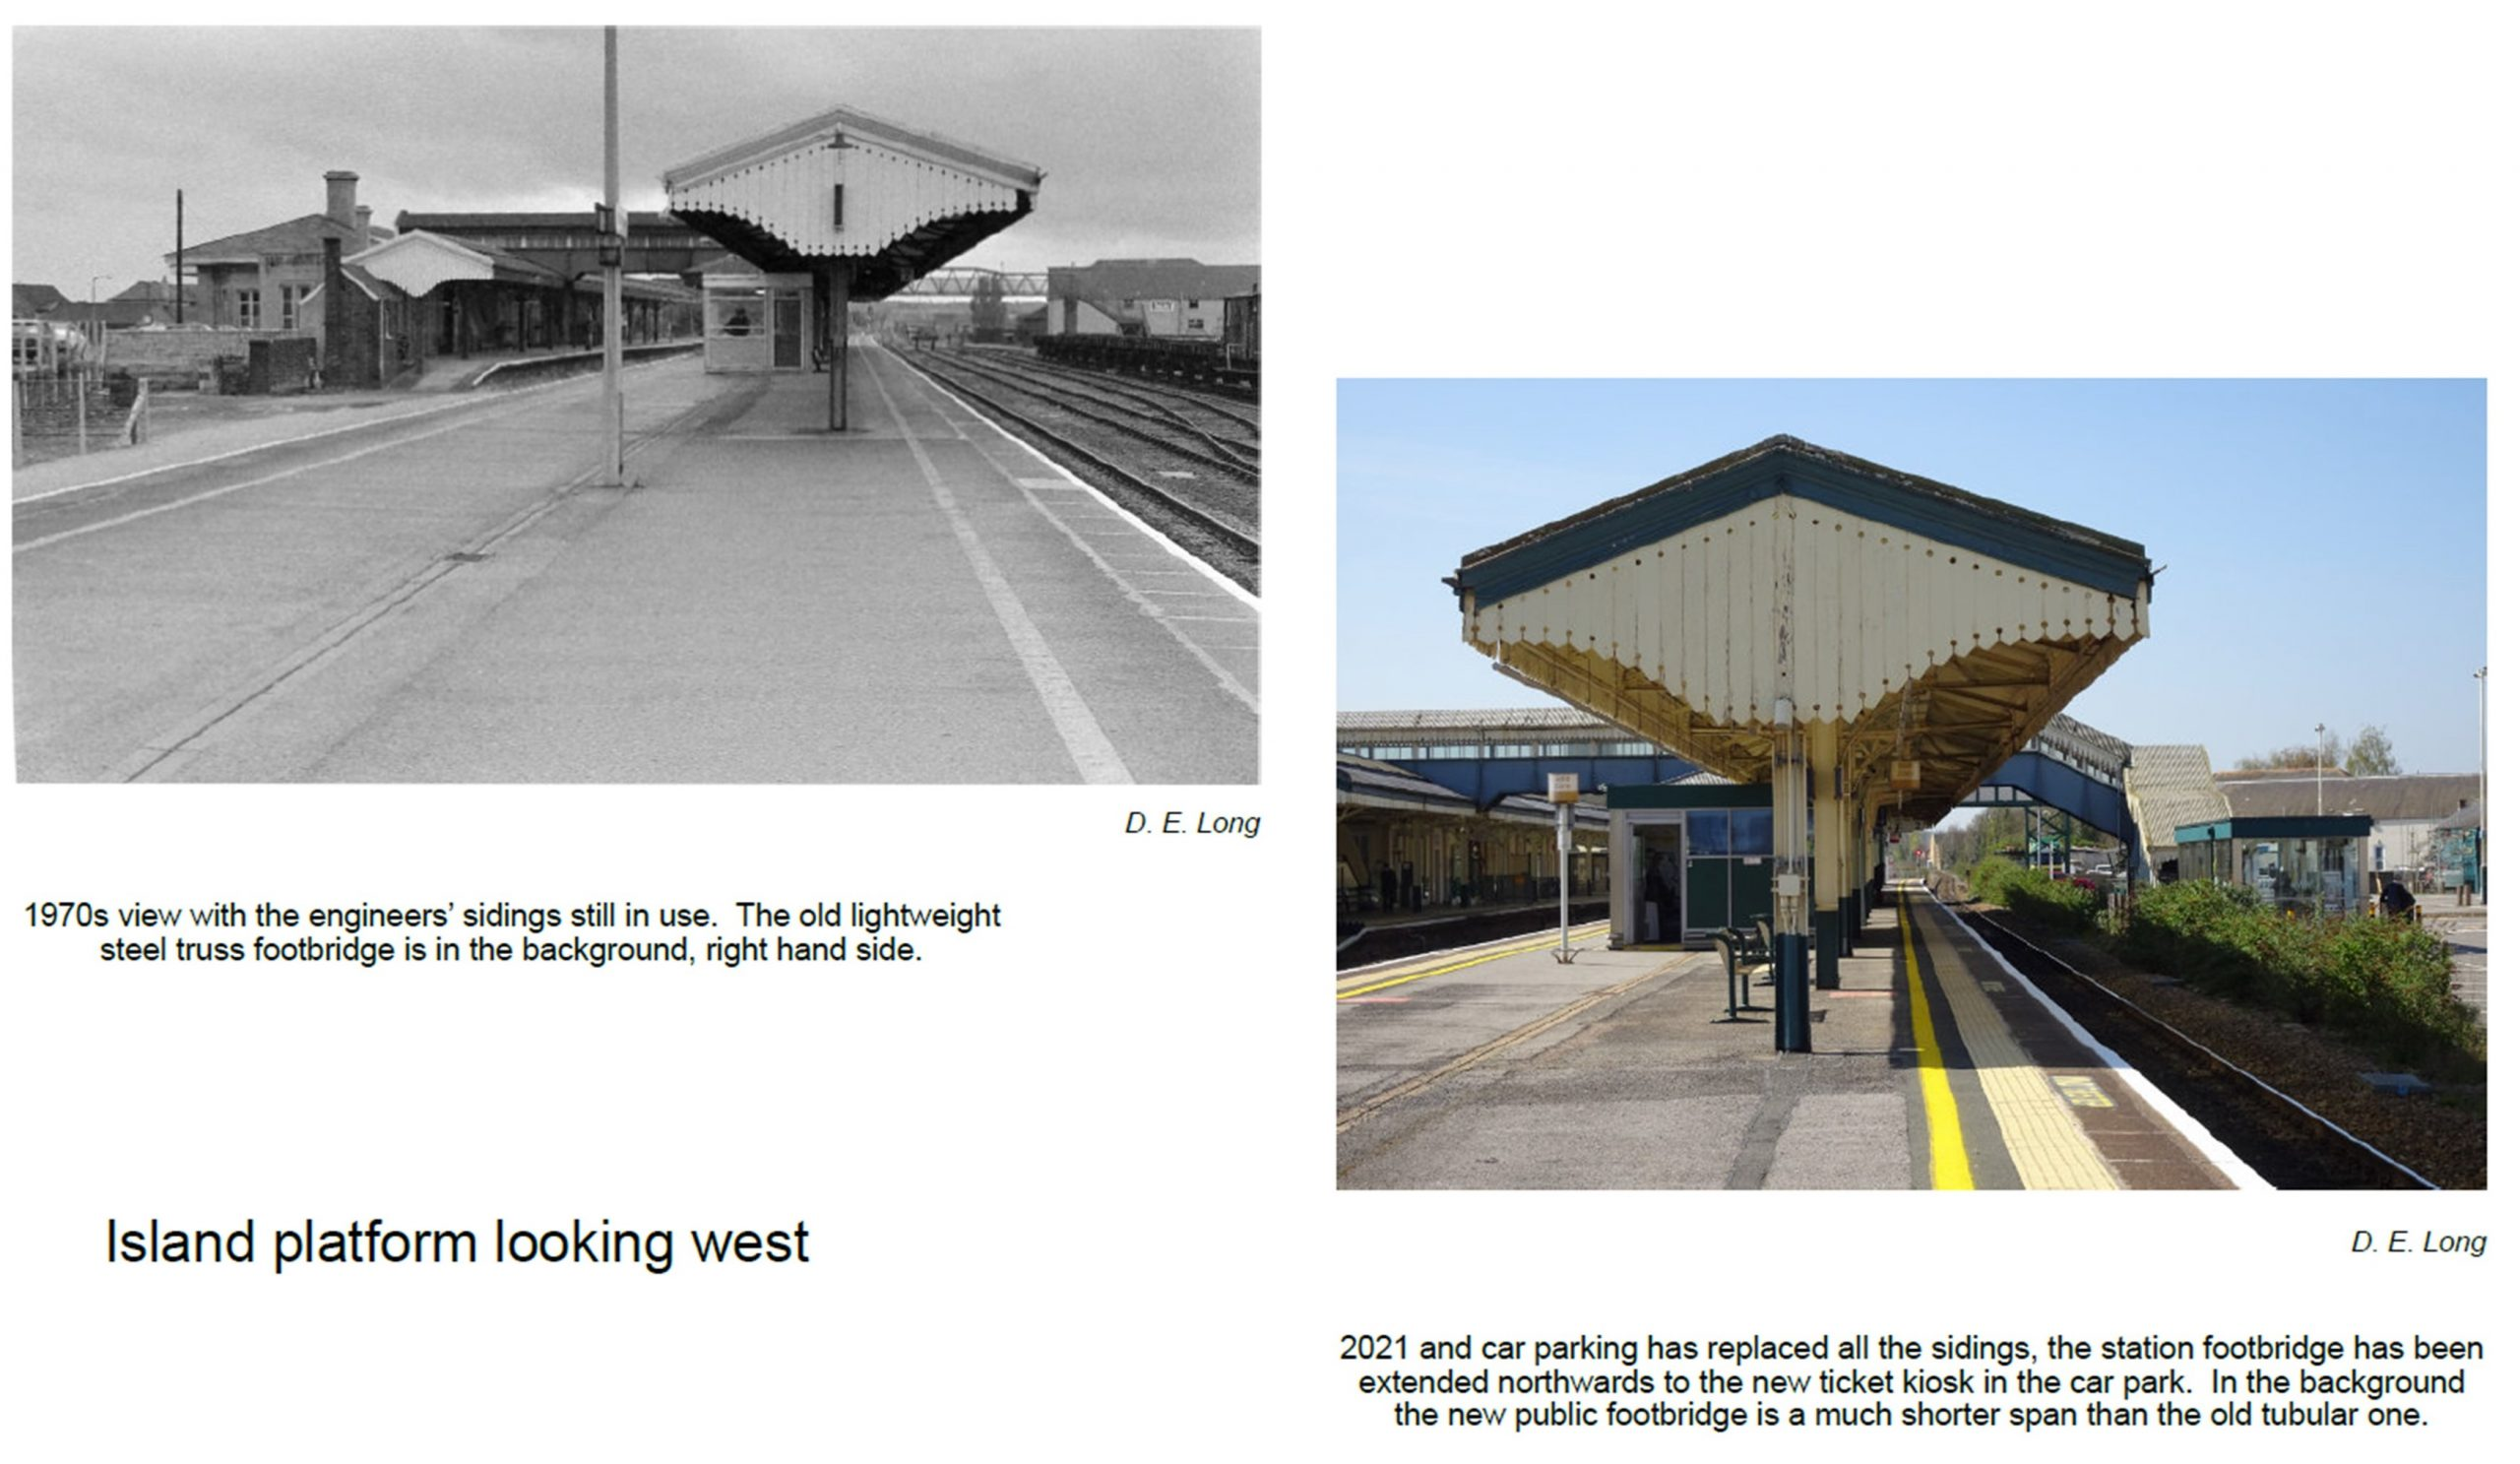 Views from 1970s and today taken on the platform showing the canopy and footbridge. The view today shows the station footbridge extended northwards into the car park.